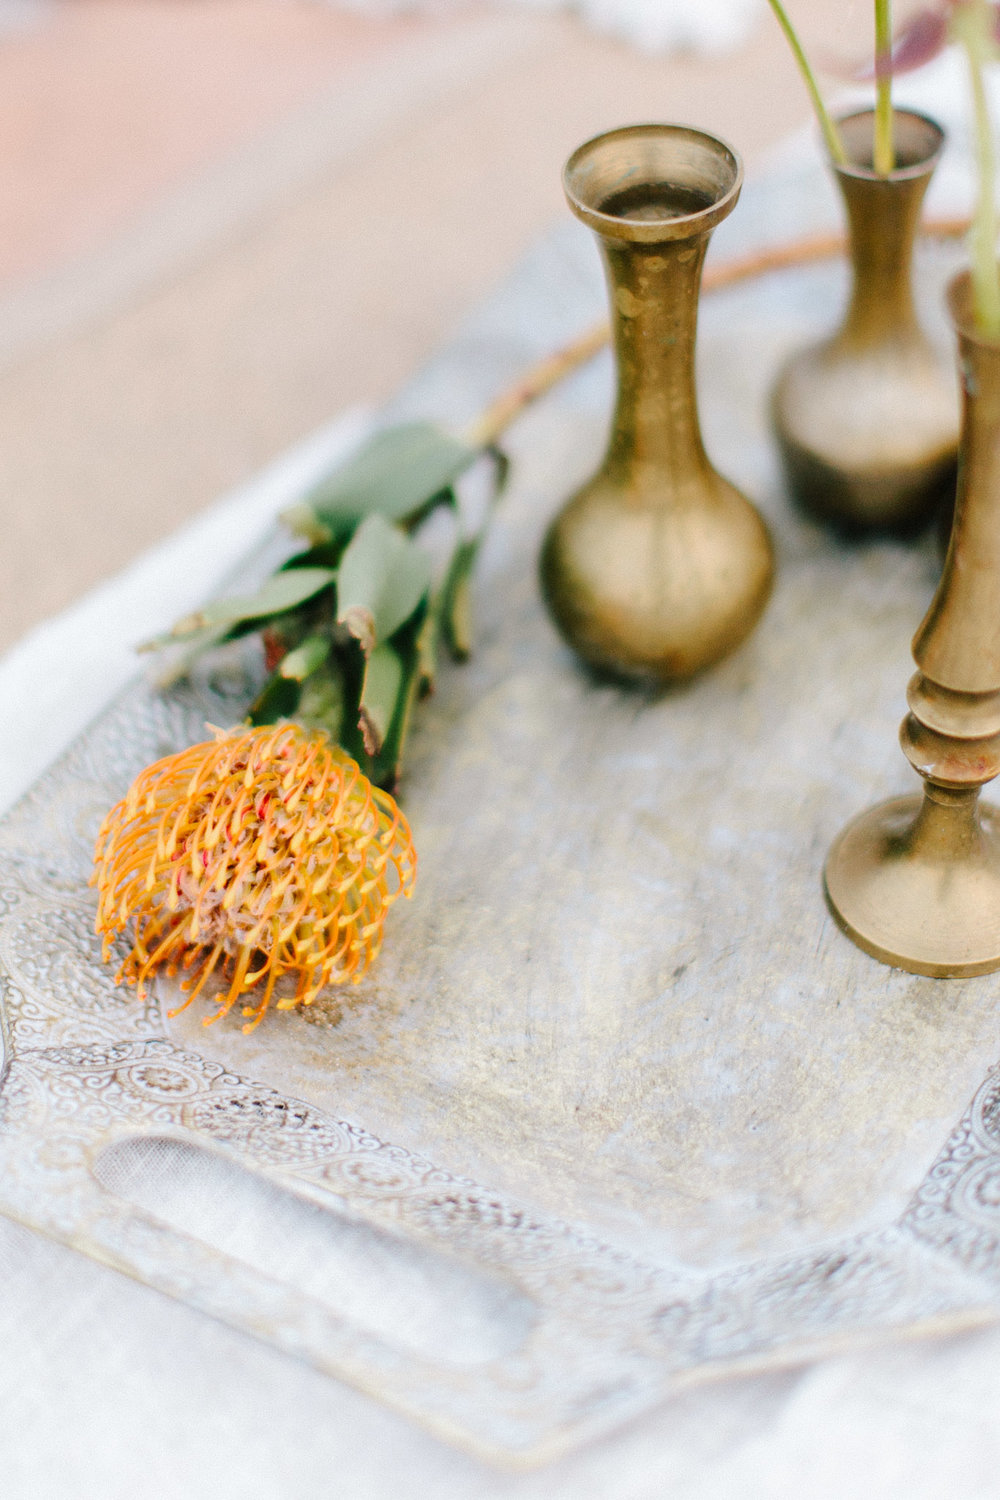 Speyer-Moroccan-Wedding-Inspiration-Pia-Anna-Christian-Wedding-Photography-S-39.jpg